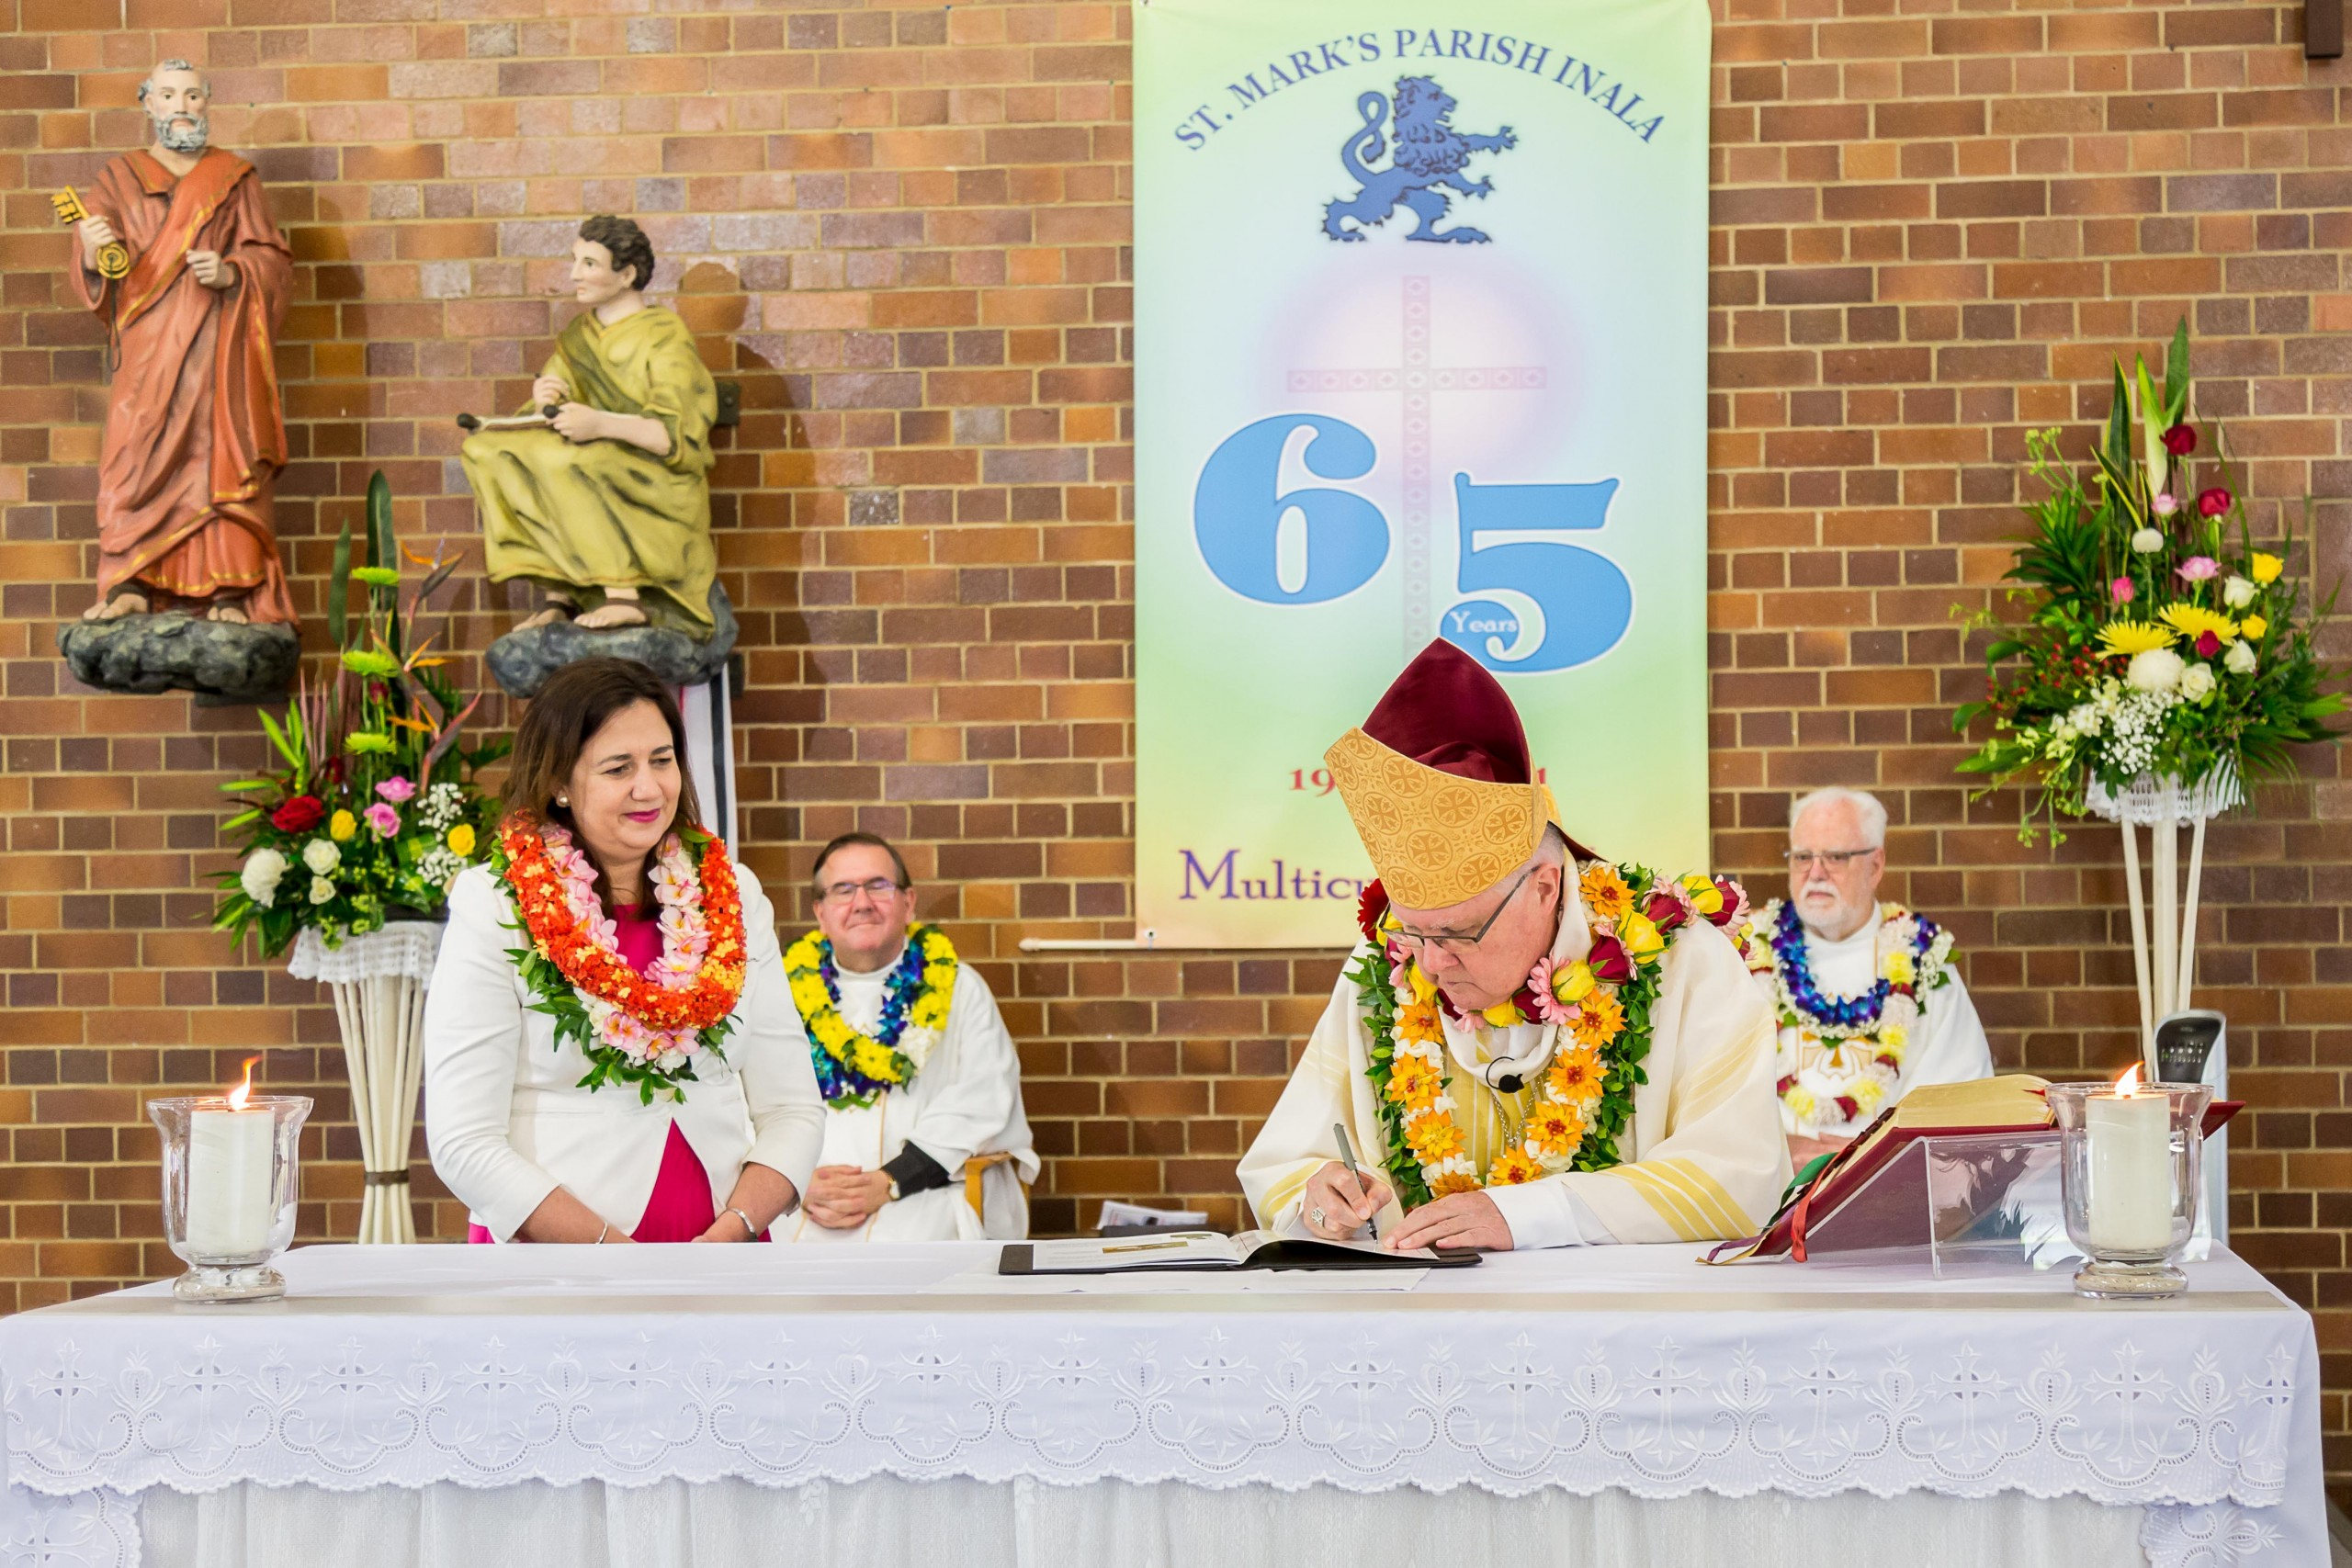 65th Jubilee Multicultural Mass